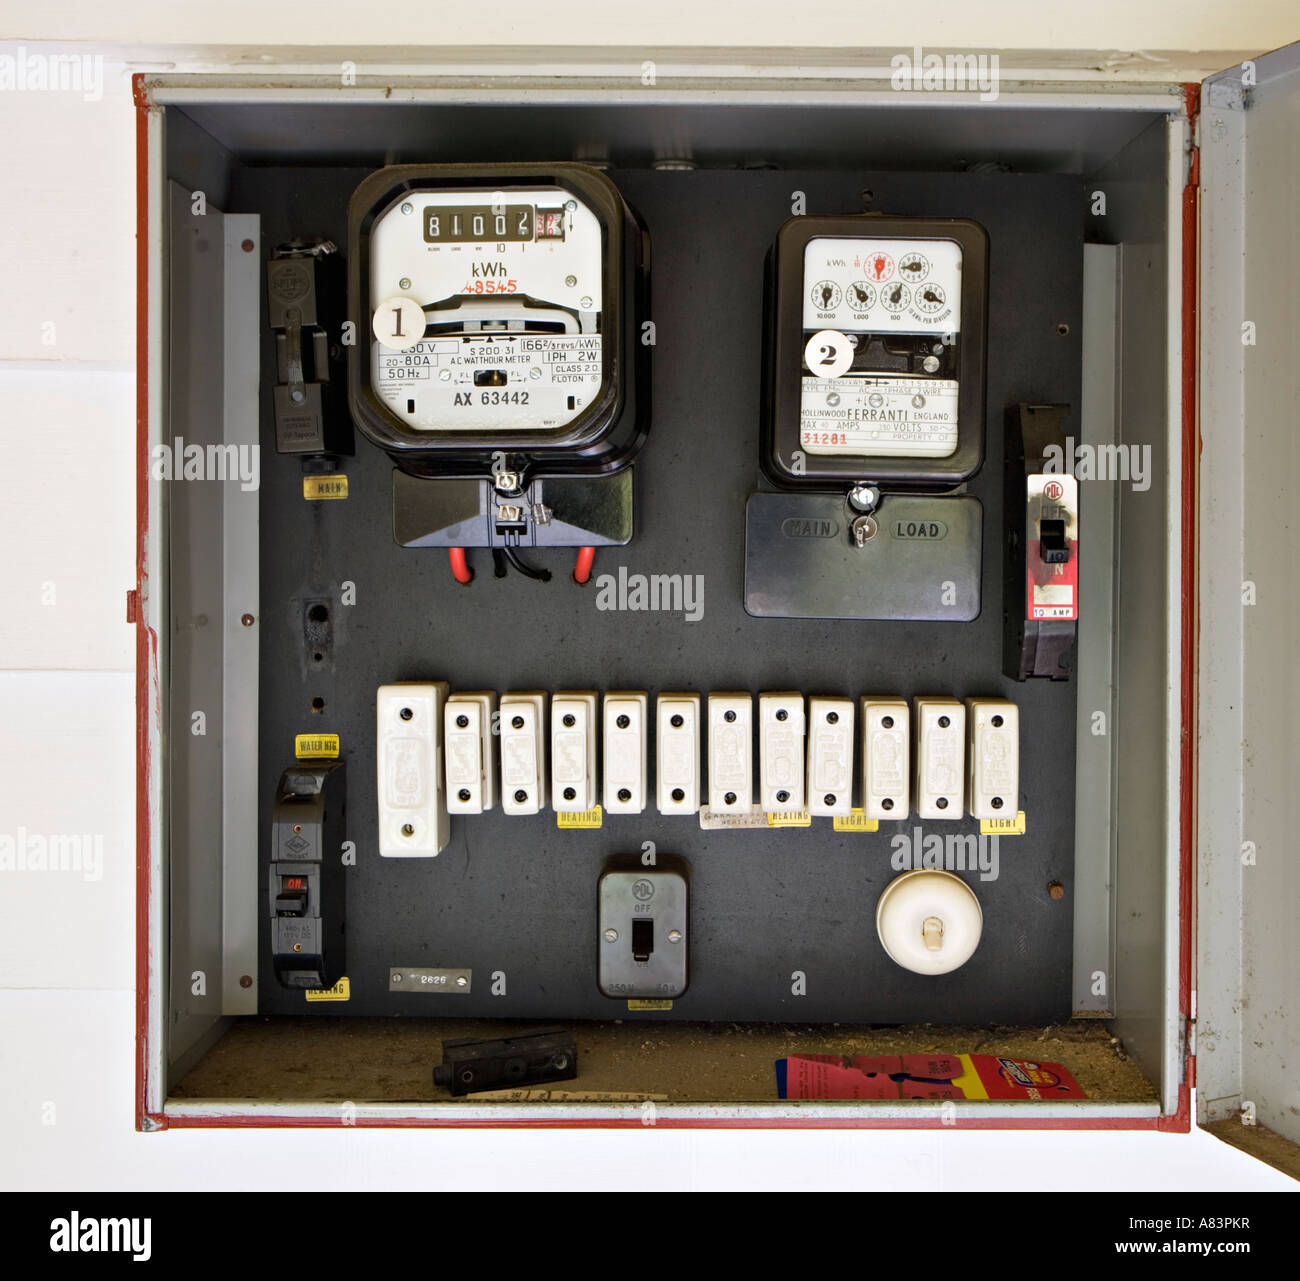 [DIAGRAM_5NL]  68F759 Electrical Meter Box Wiring Diagram | Wiring Resources | Meter Box Wiring Diagram |  | Wiring Resources